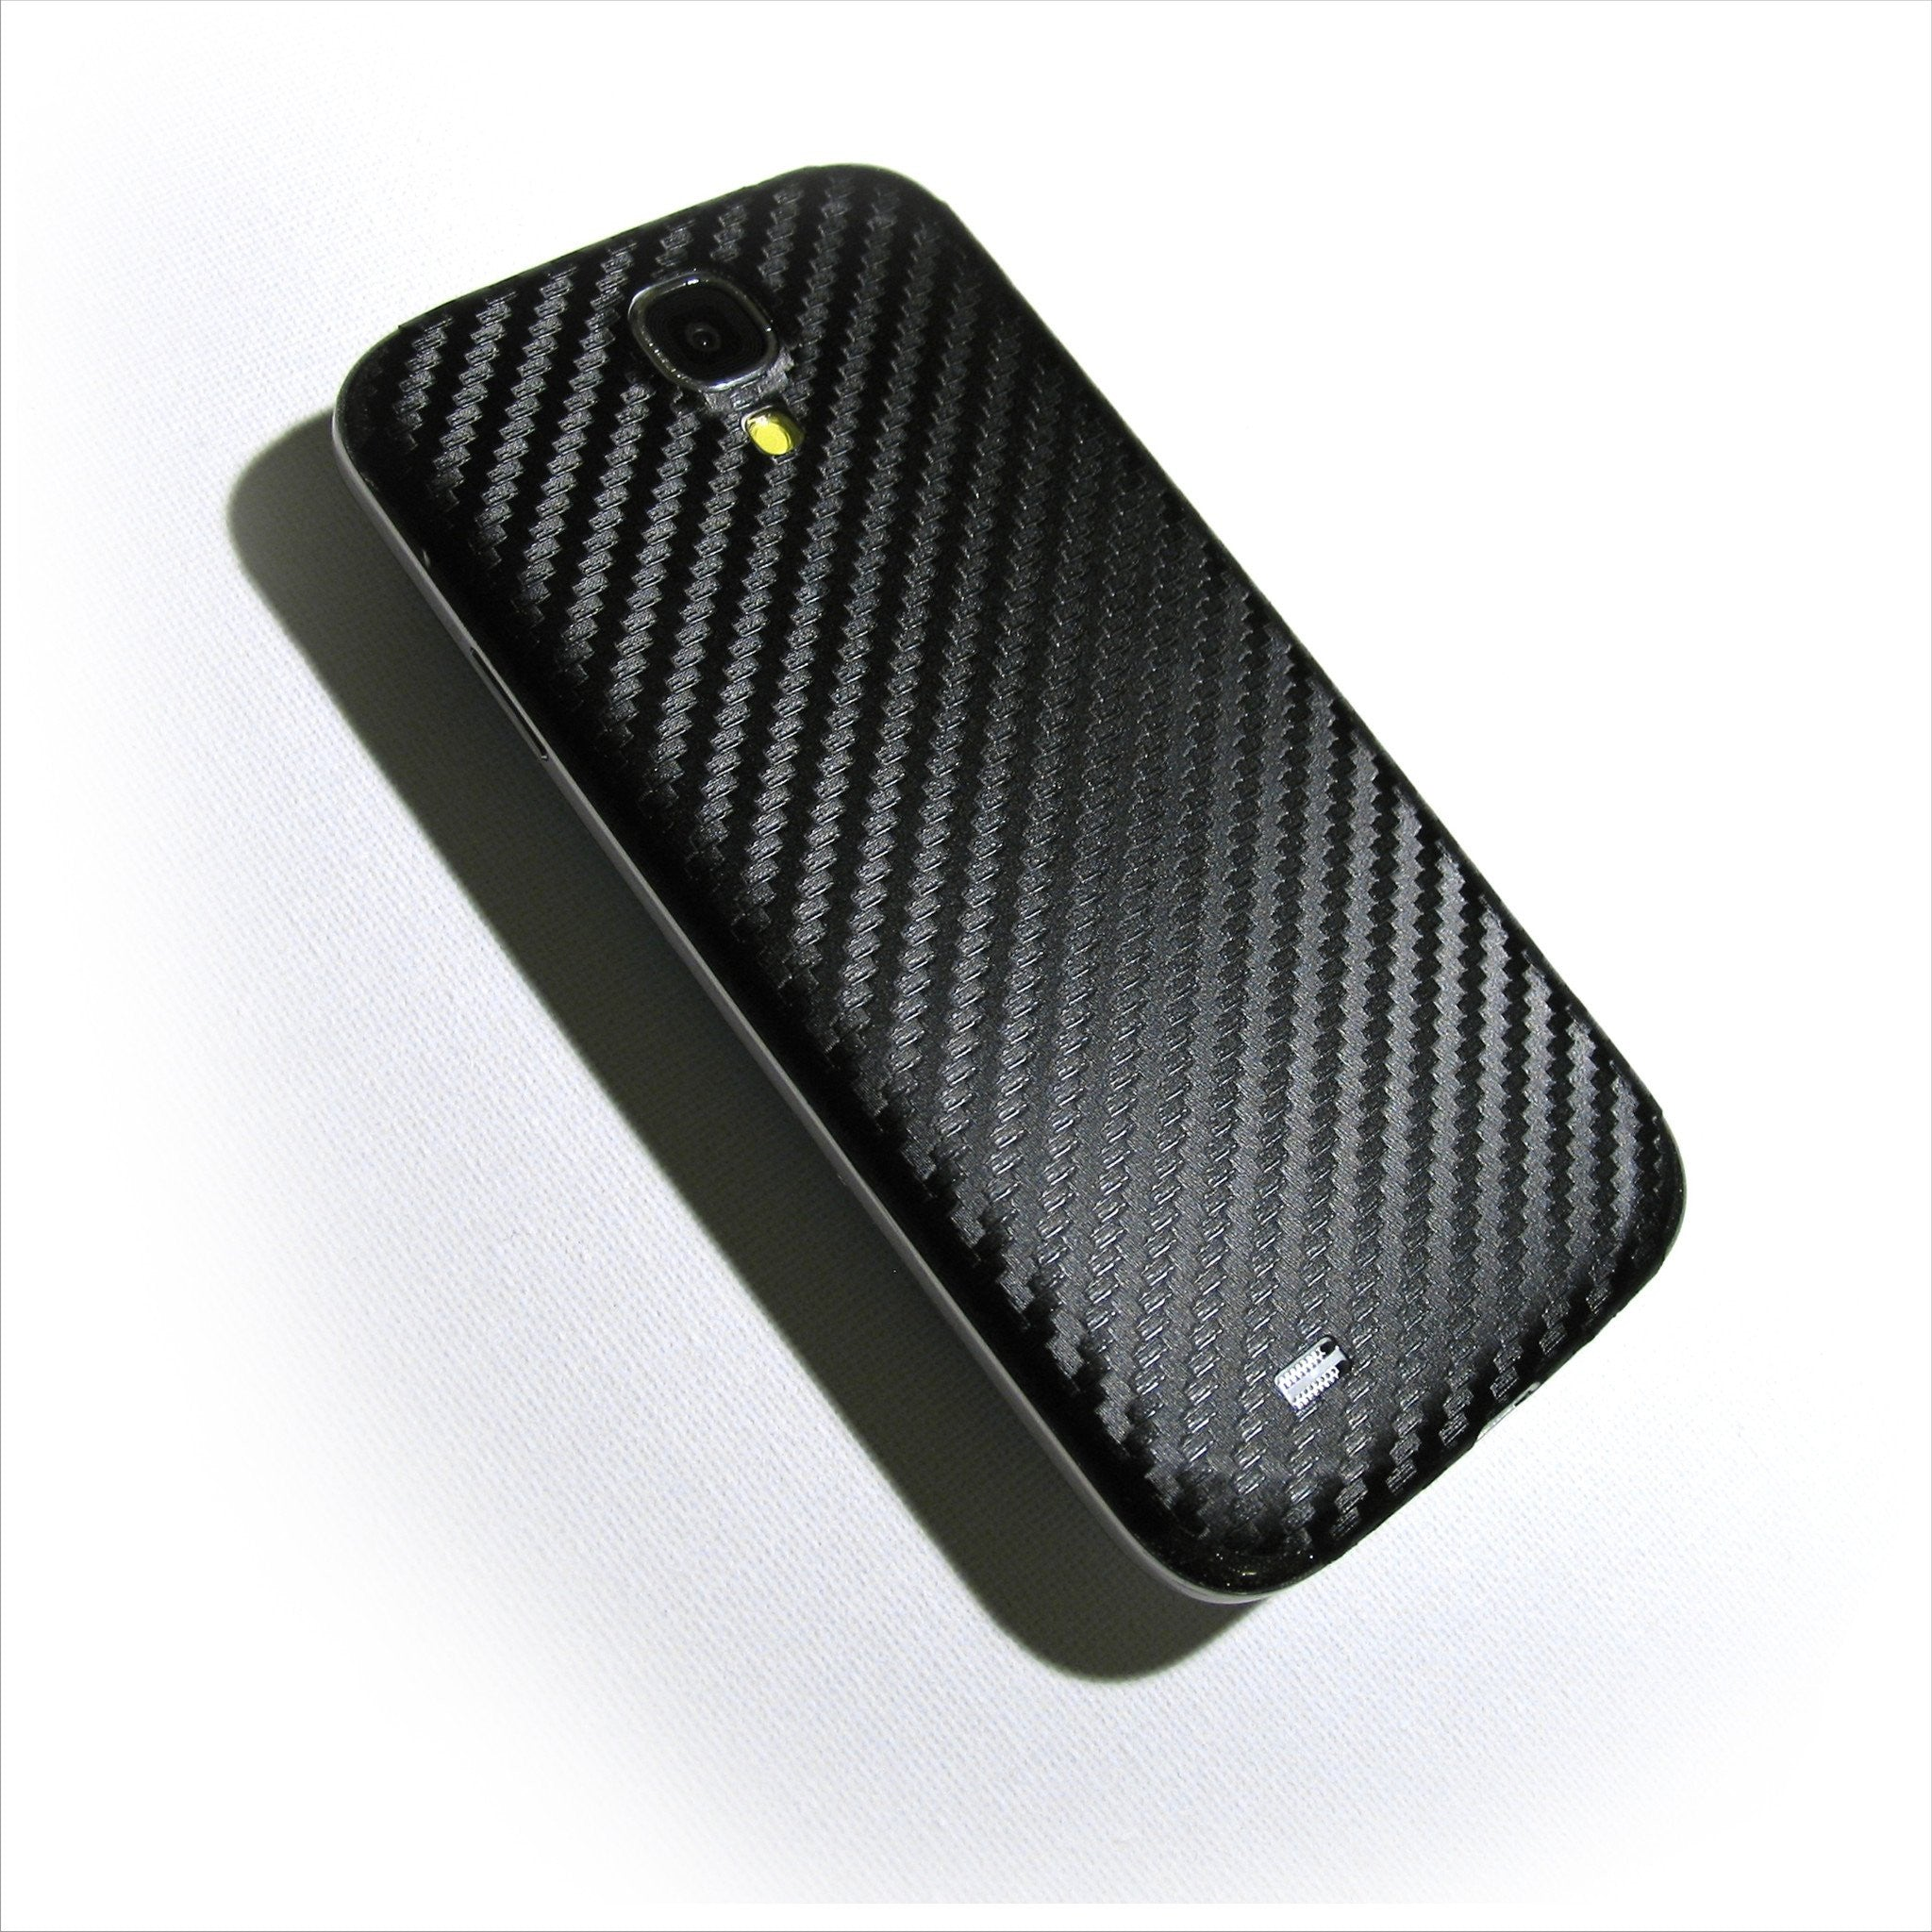 Samsung Galaxy S4 carbon black skin